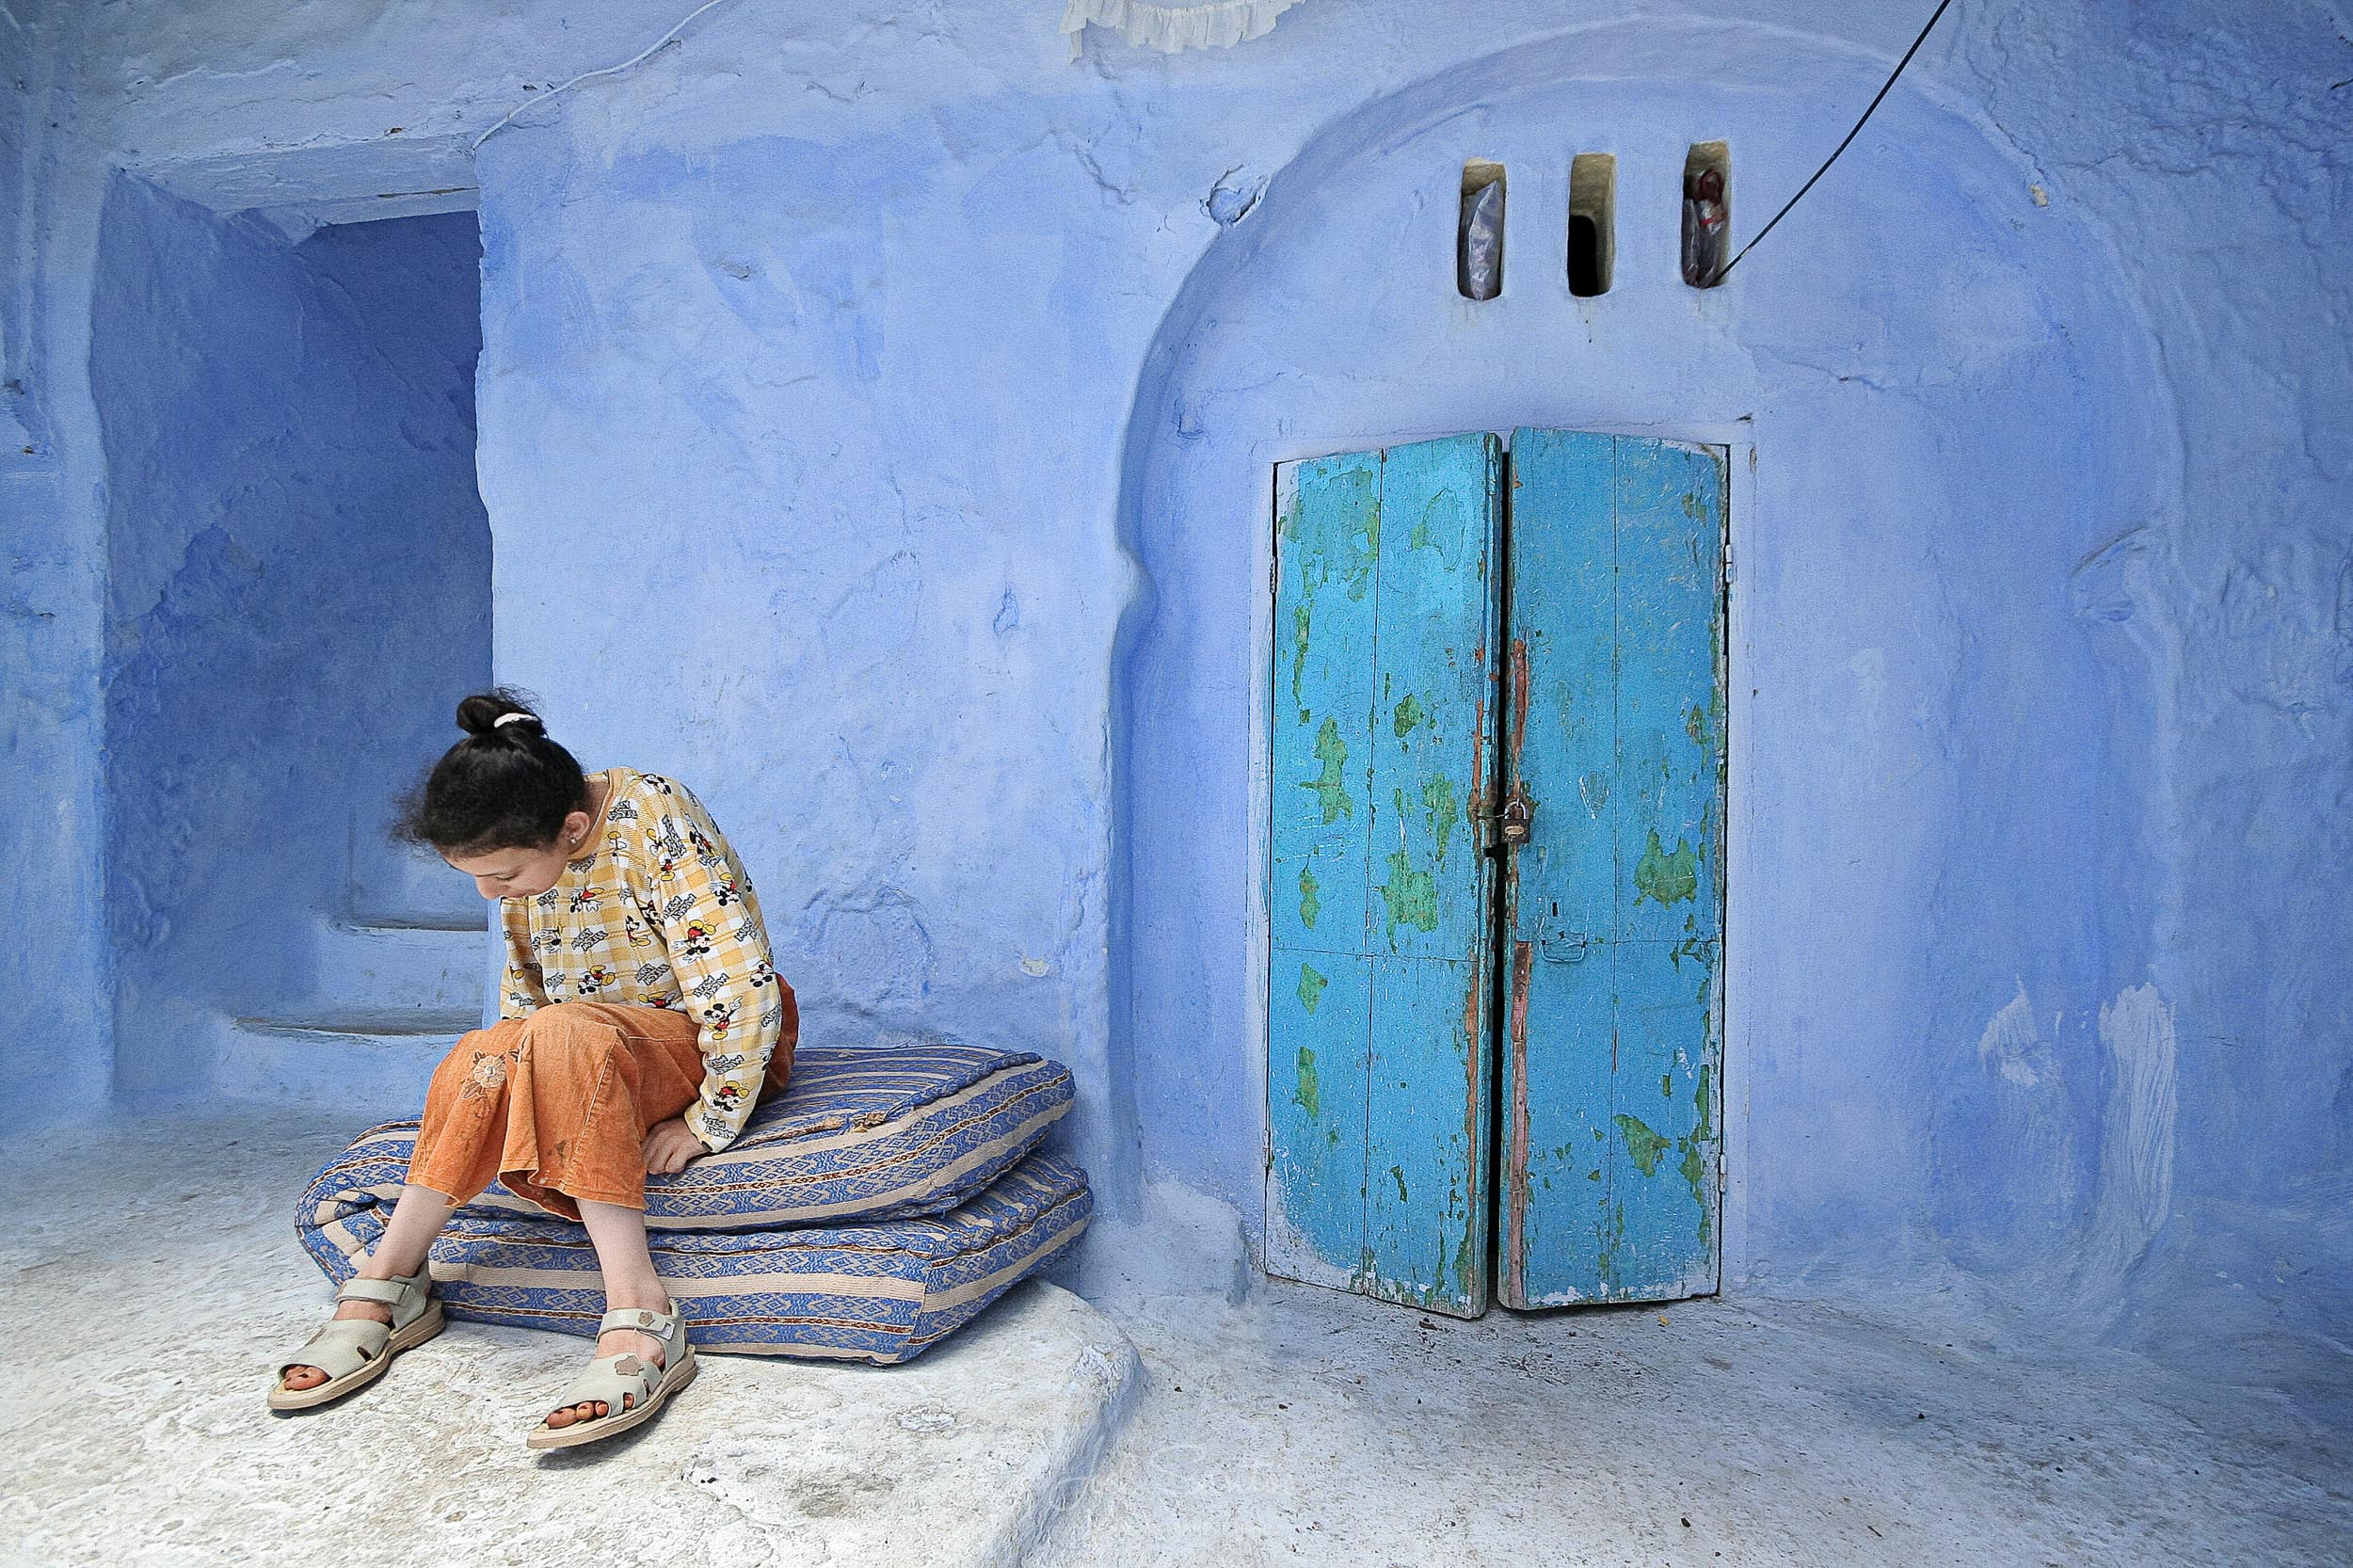 Girl insde patio, Chefchaouen, Blue city, Morocco